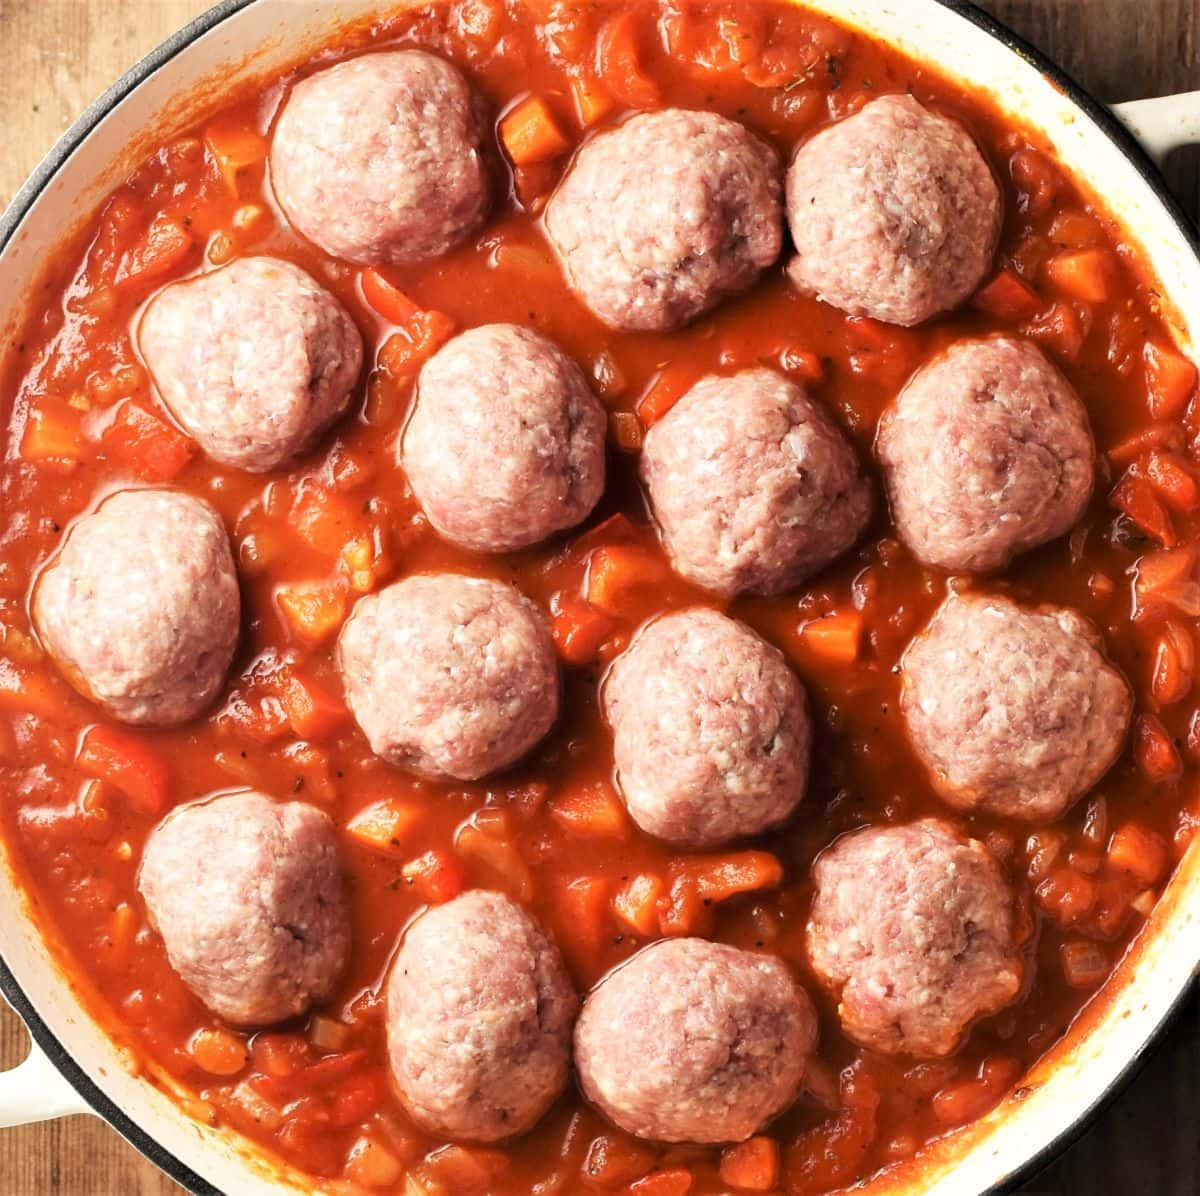 Raw meatballs in chunky tomato sauce in large pan.